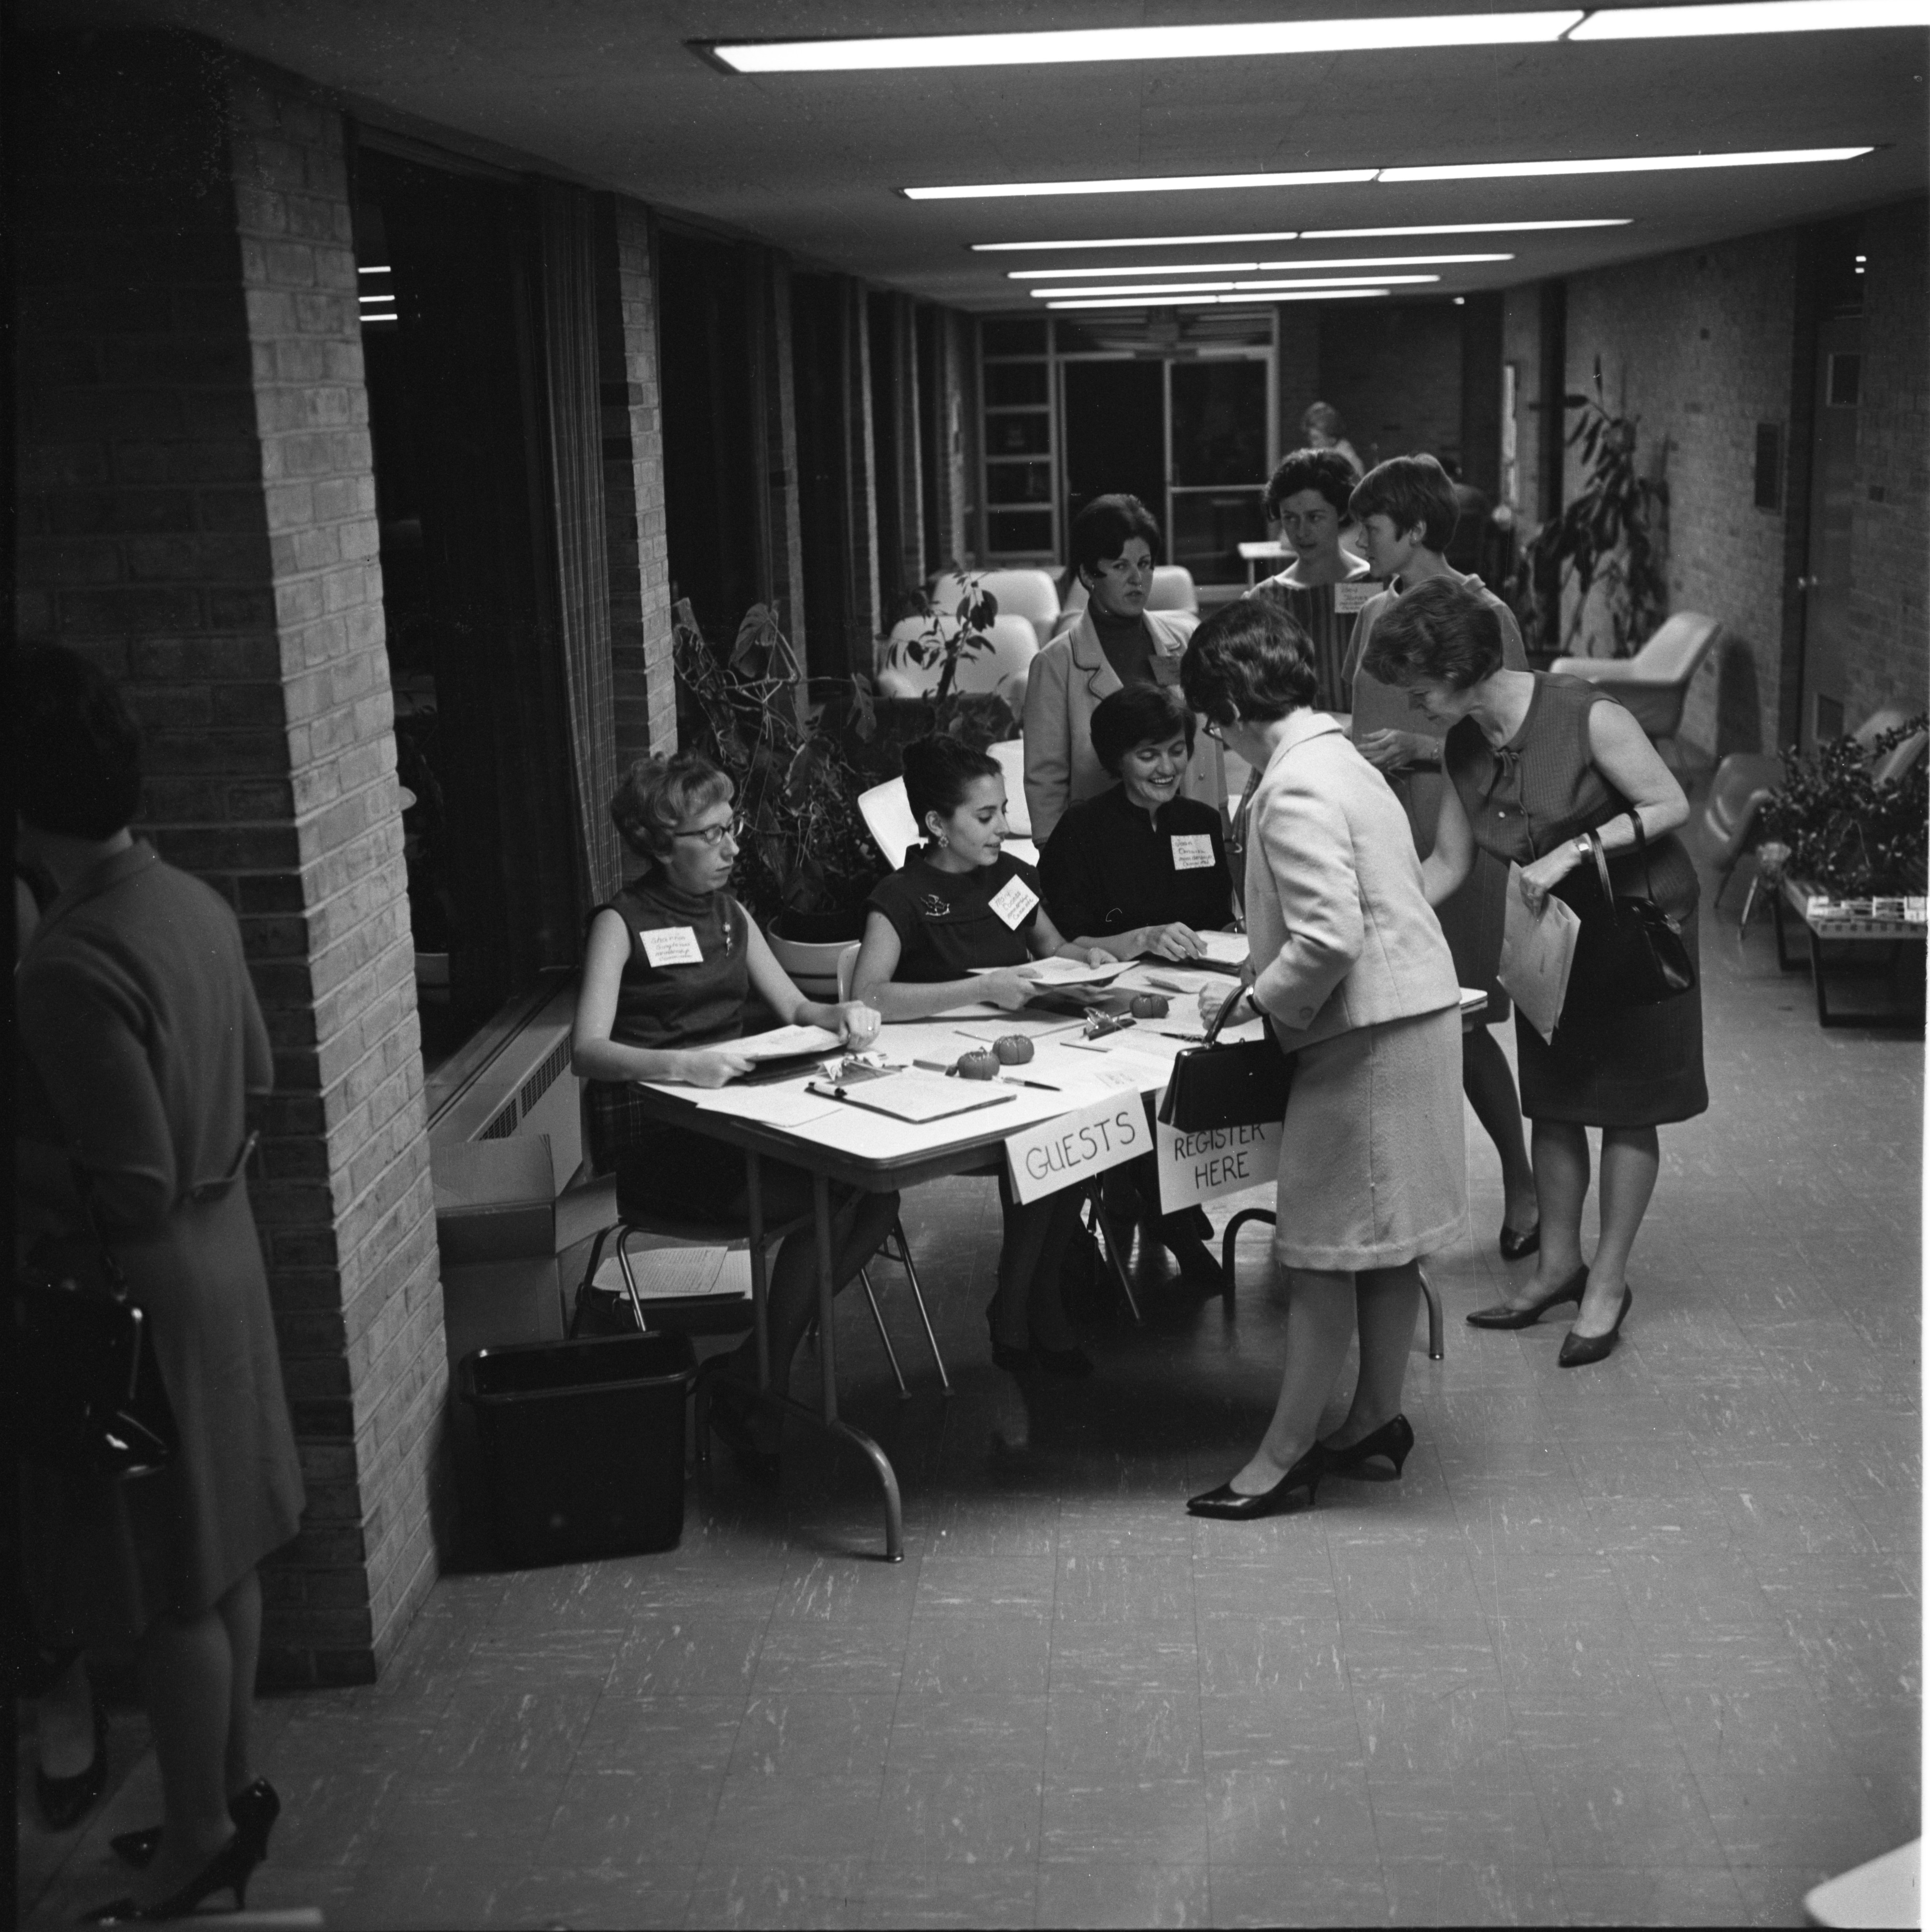 Guests Are Registered At A League Of Women Voters Gathering, September 1967 image